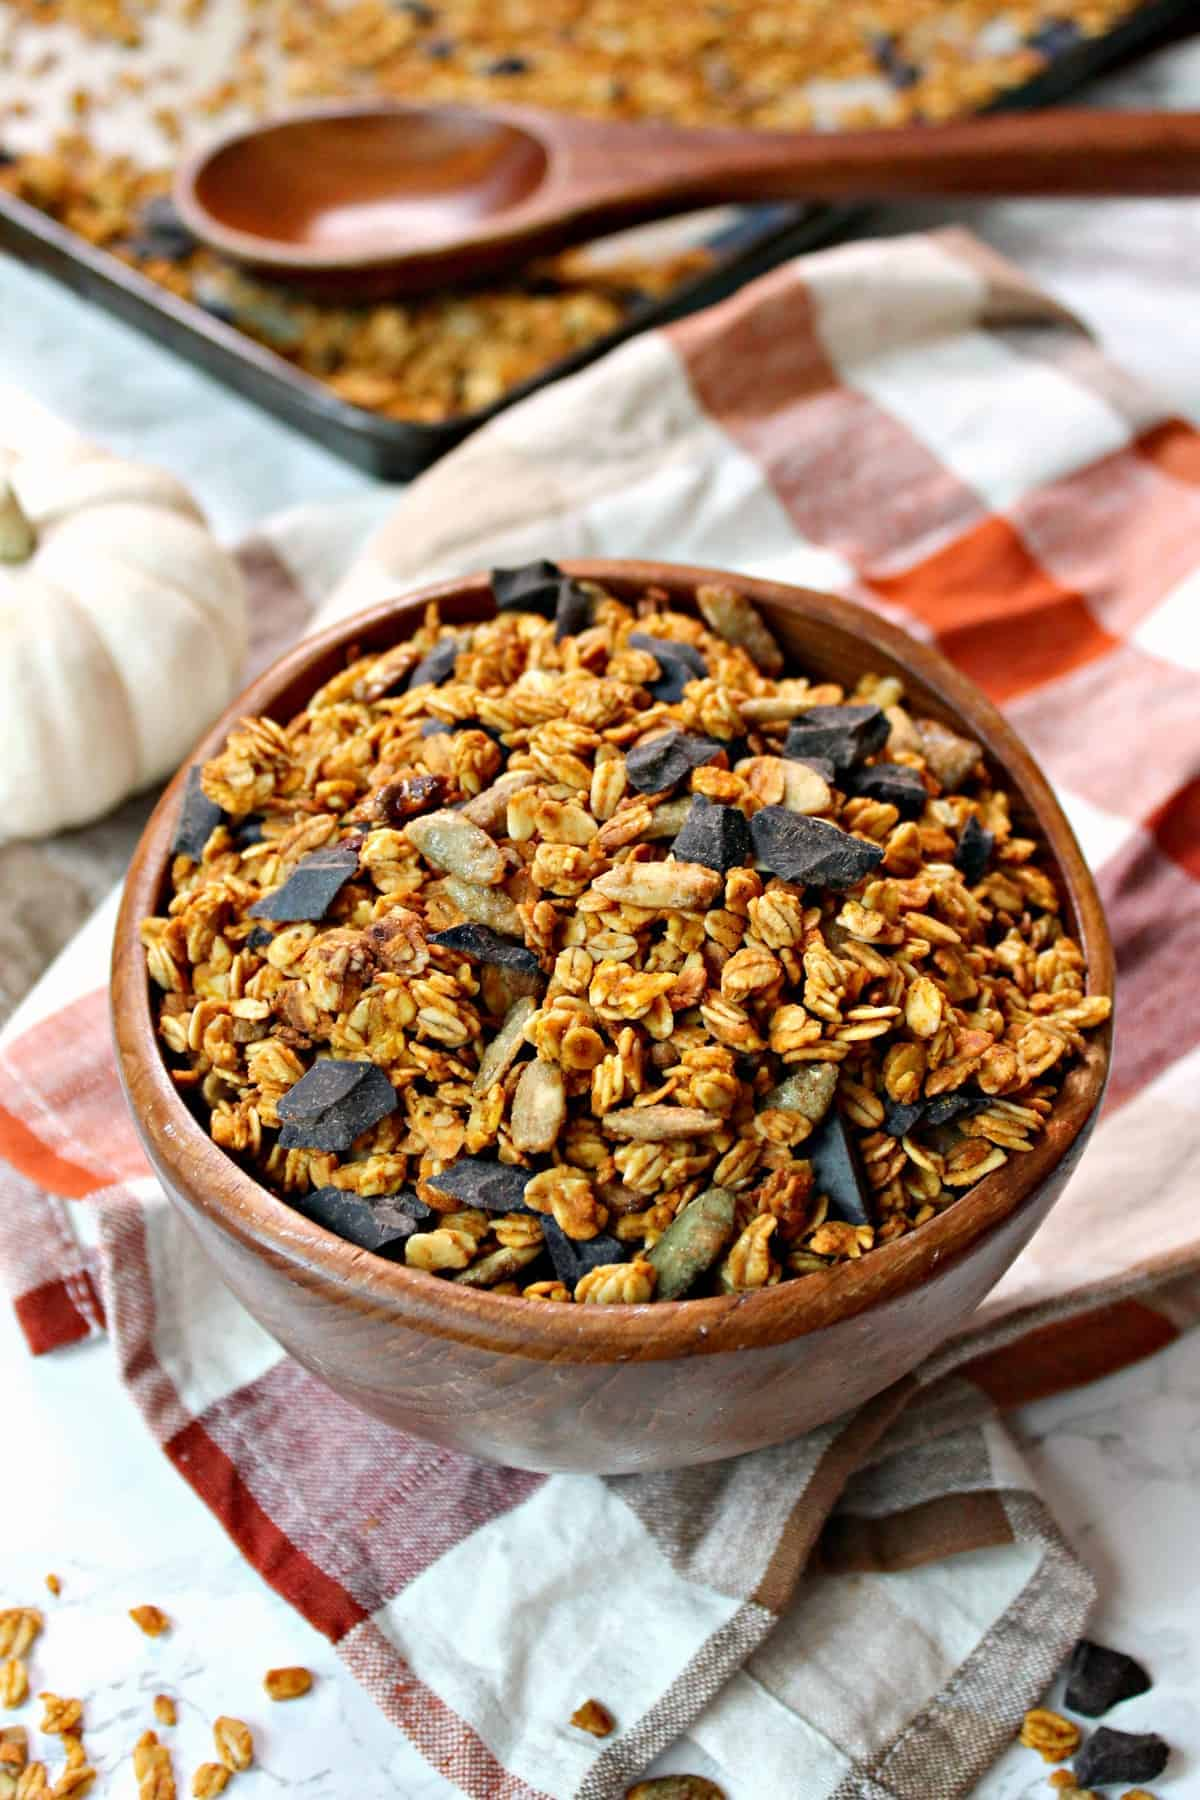 Pumpkin Seed Chocolate Chunk Granola! This crunchy and addictive homemade granola gets a triple dose of pumpkin-y goodness thanks to the addition of pumpkin spiced pumpkin seeds, pumpkin pie spice and pumpkin puree. Semi-sweet chocolate chunks add decadence to this heavenly fall concoction!